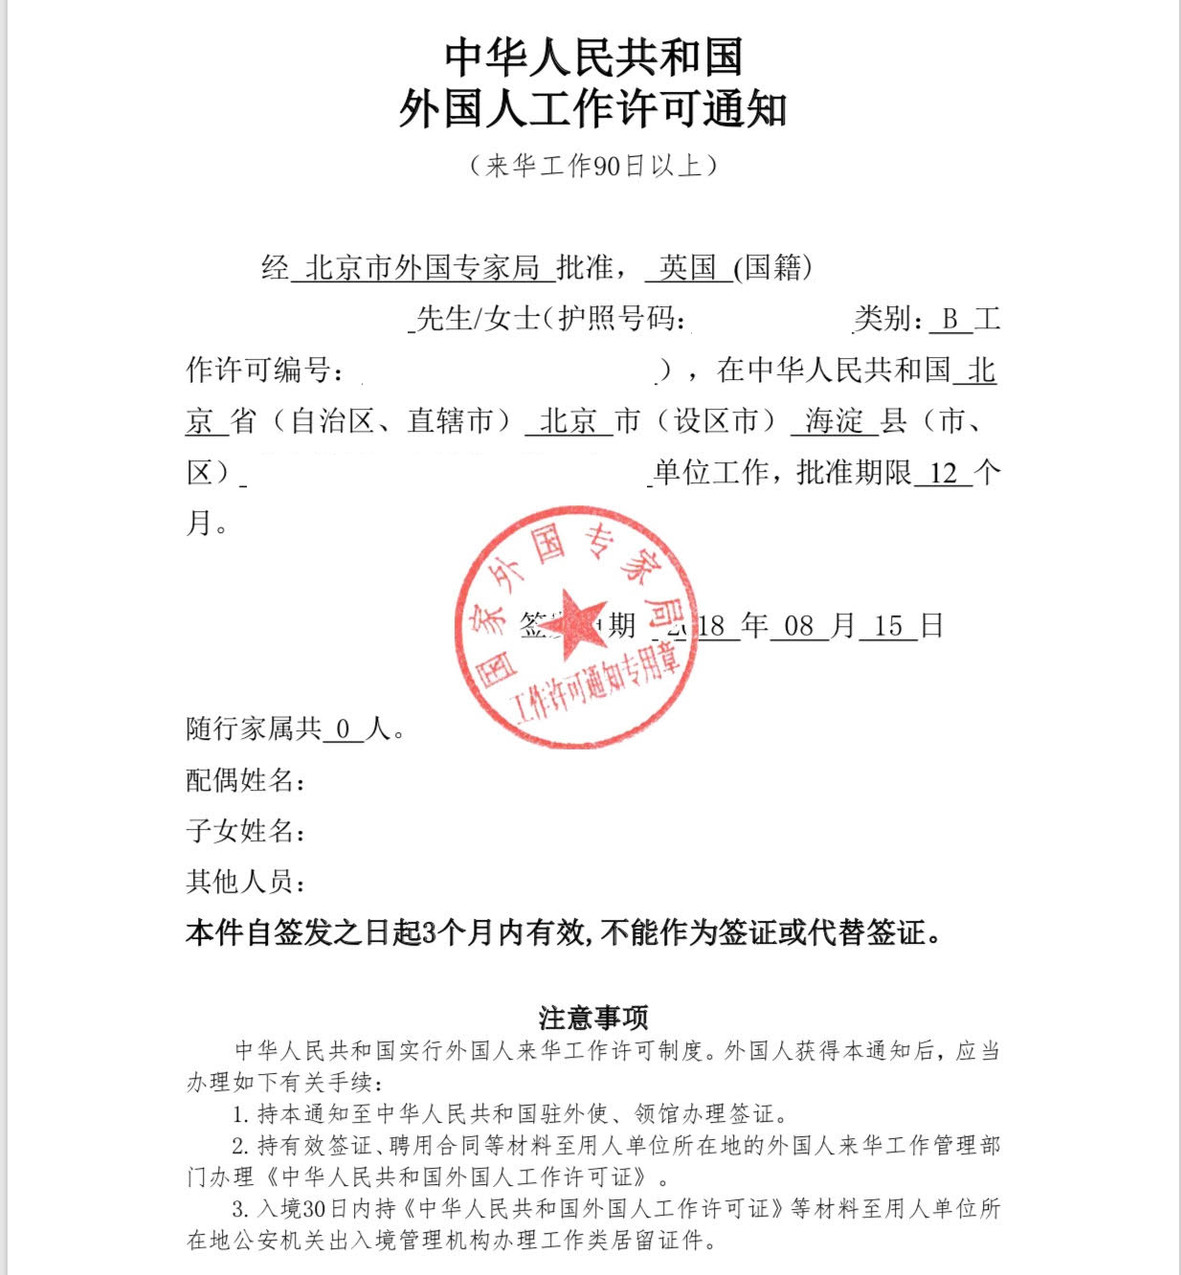 Work Permit in Chinese